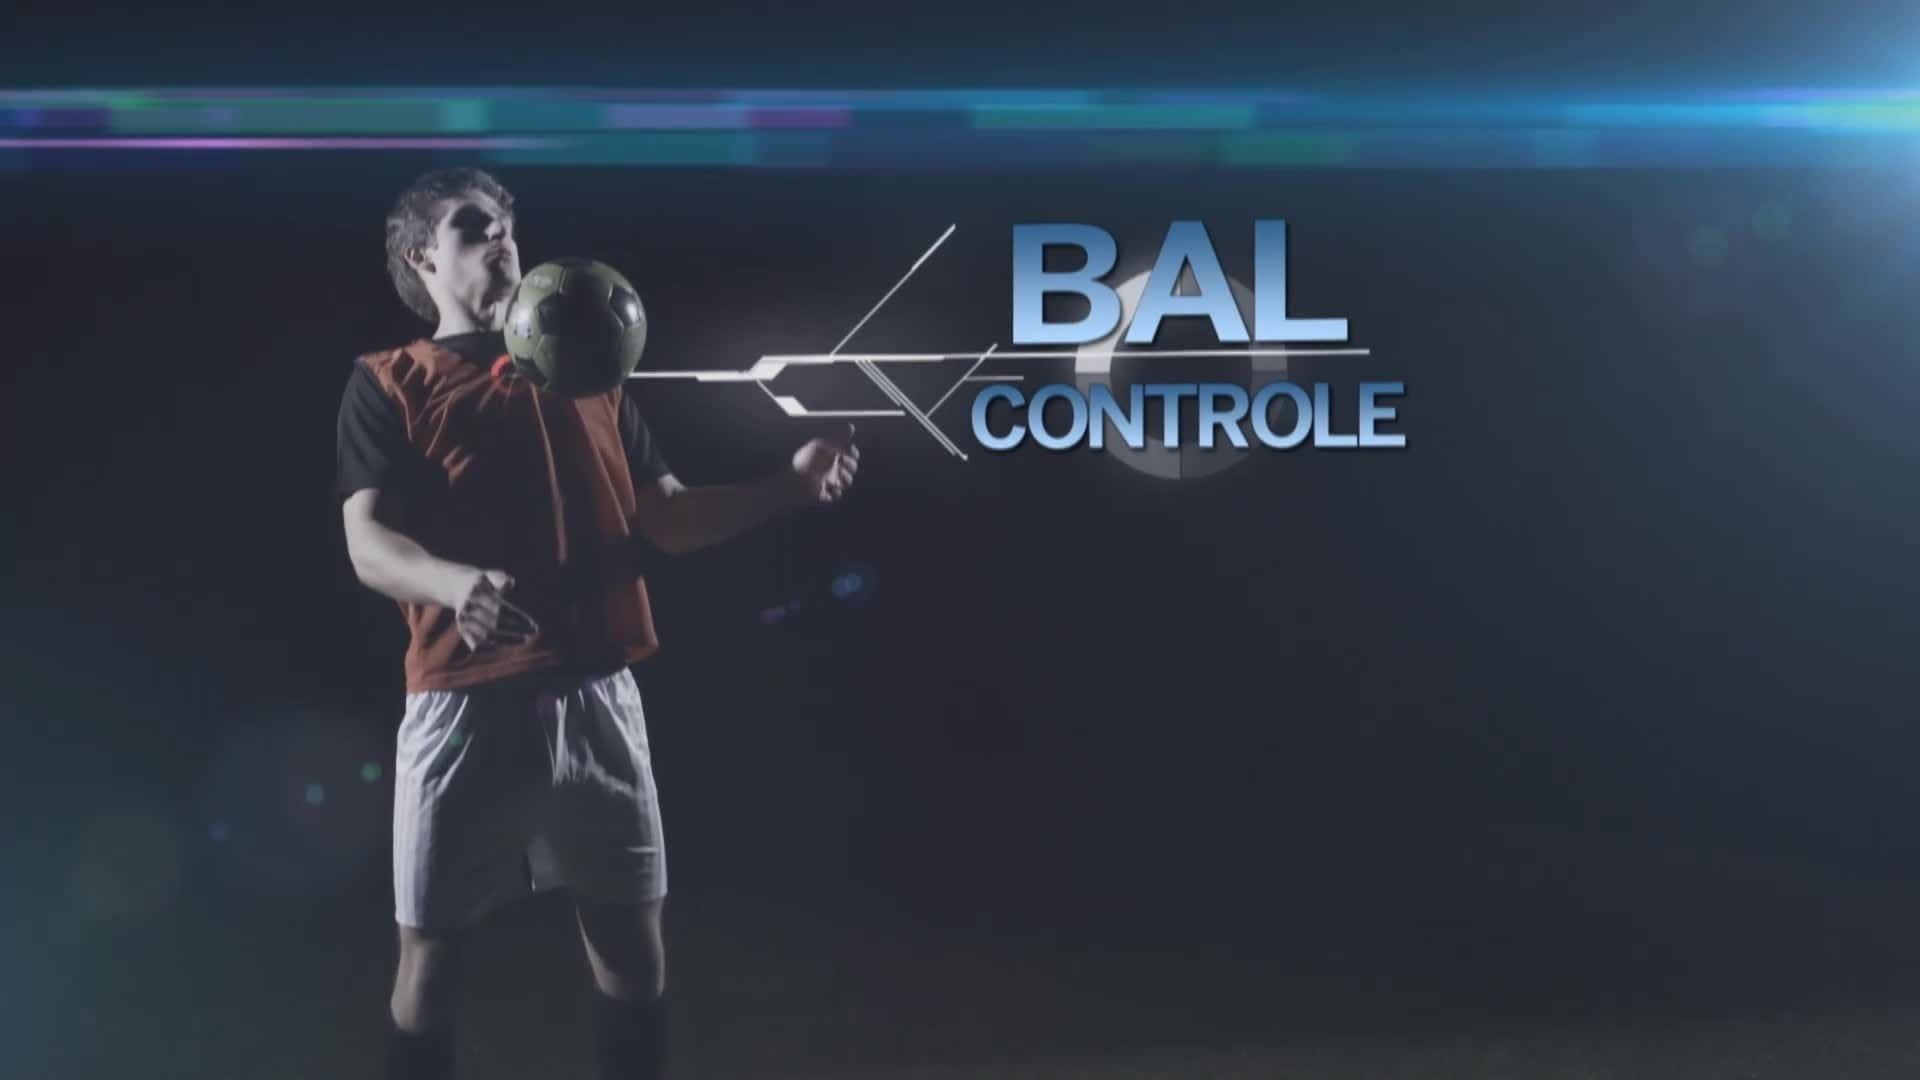 Goalmouth Voetbal Lab - Balcontrole